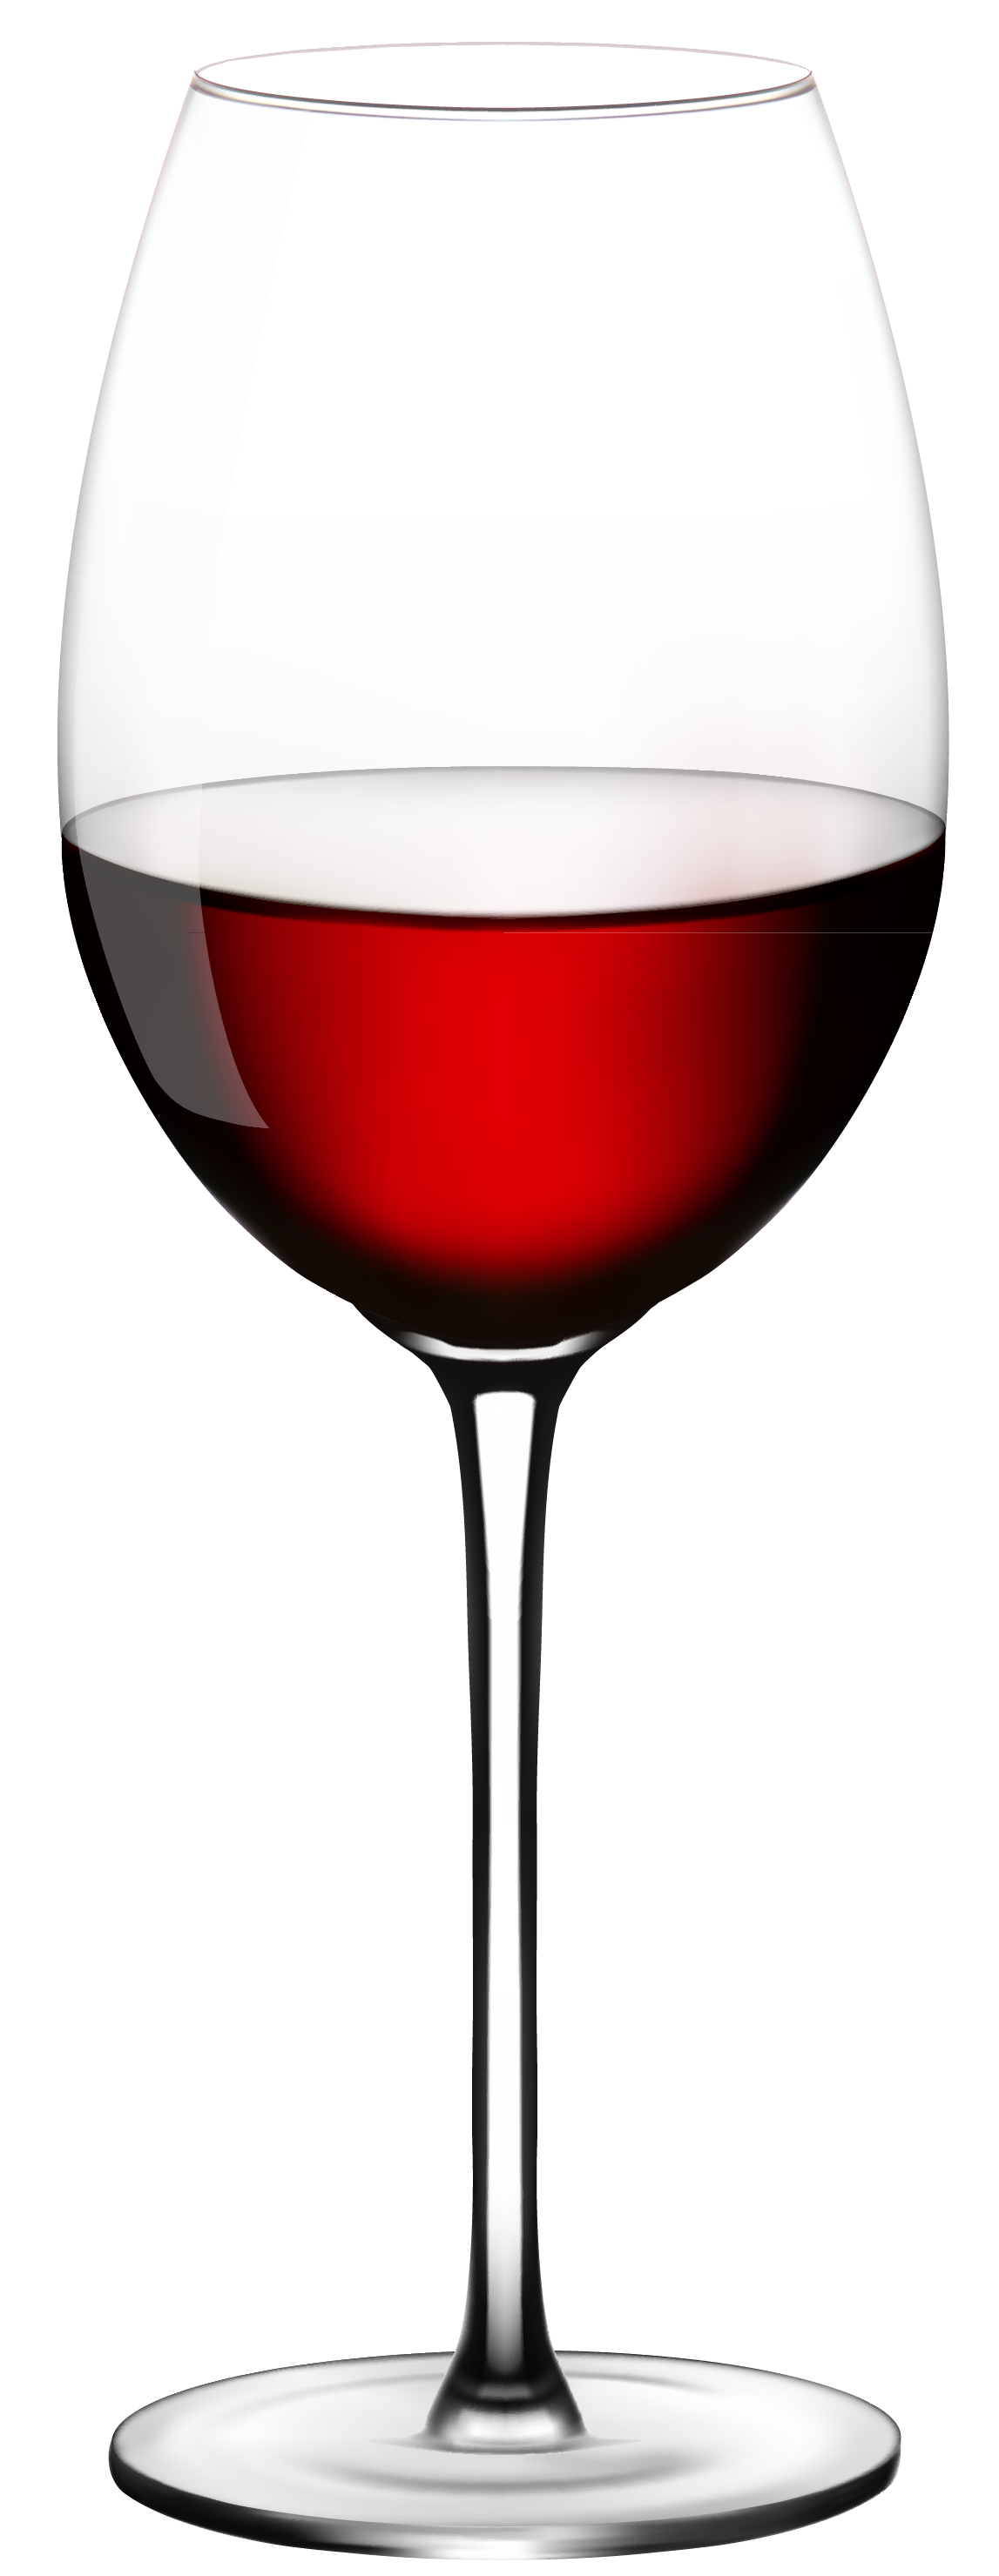 Png glass. Wine transparent pictures free